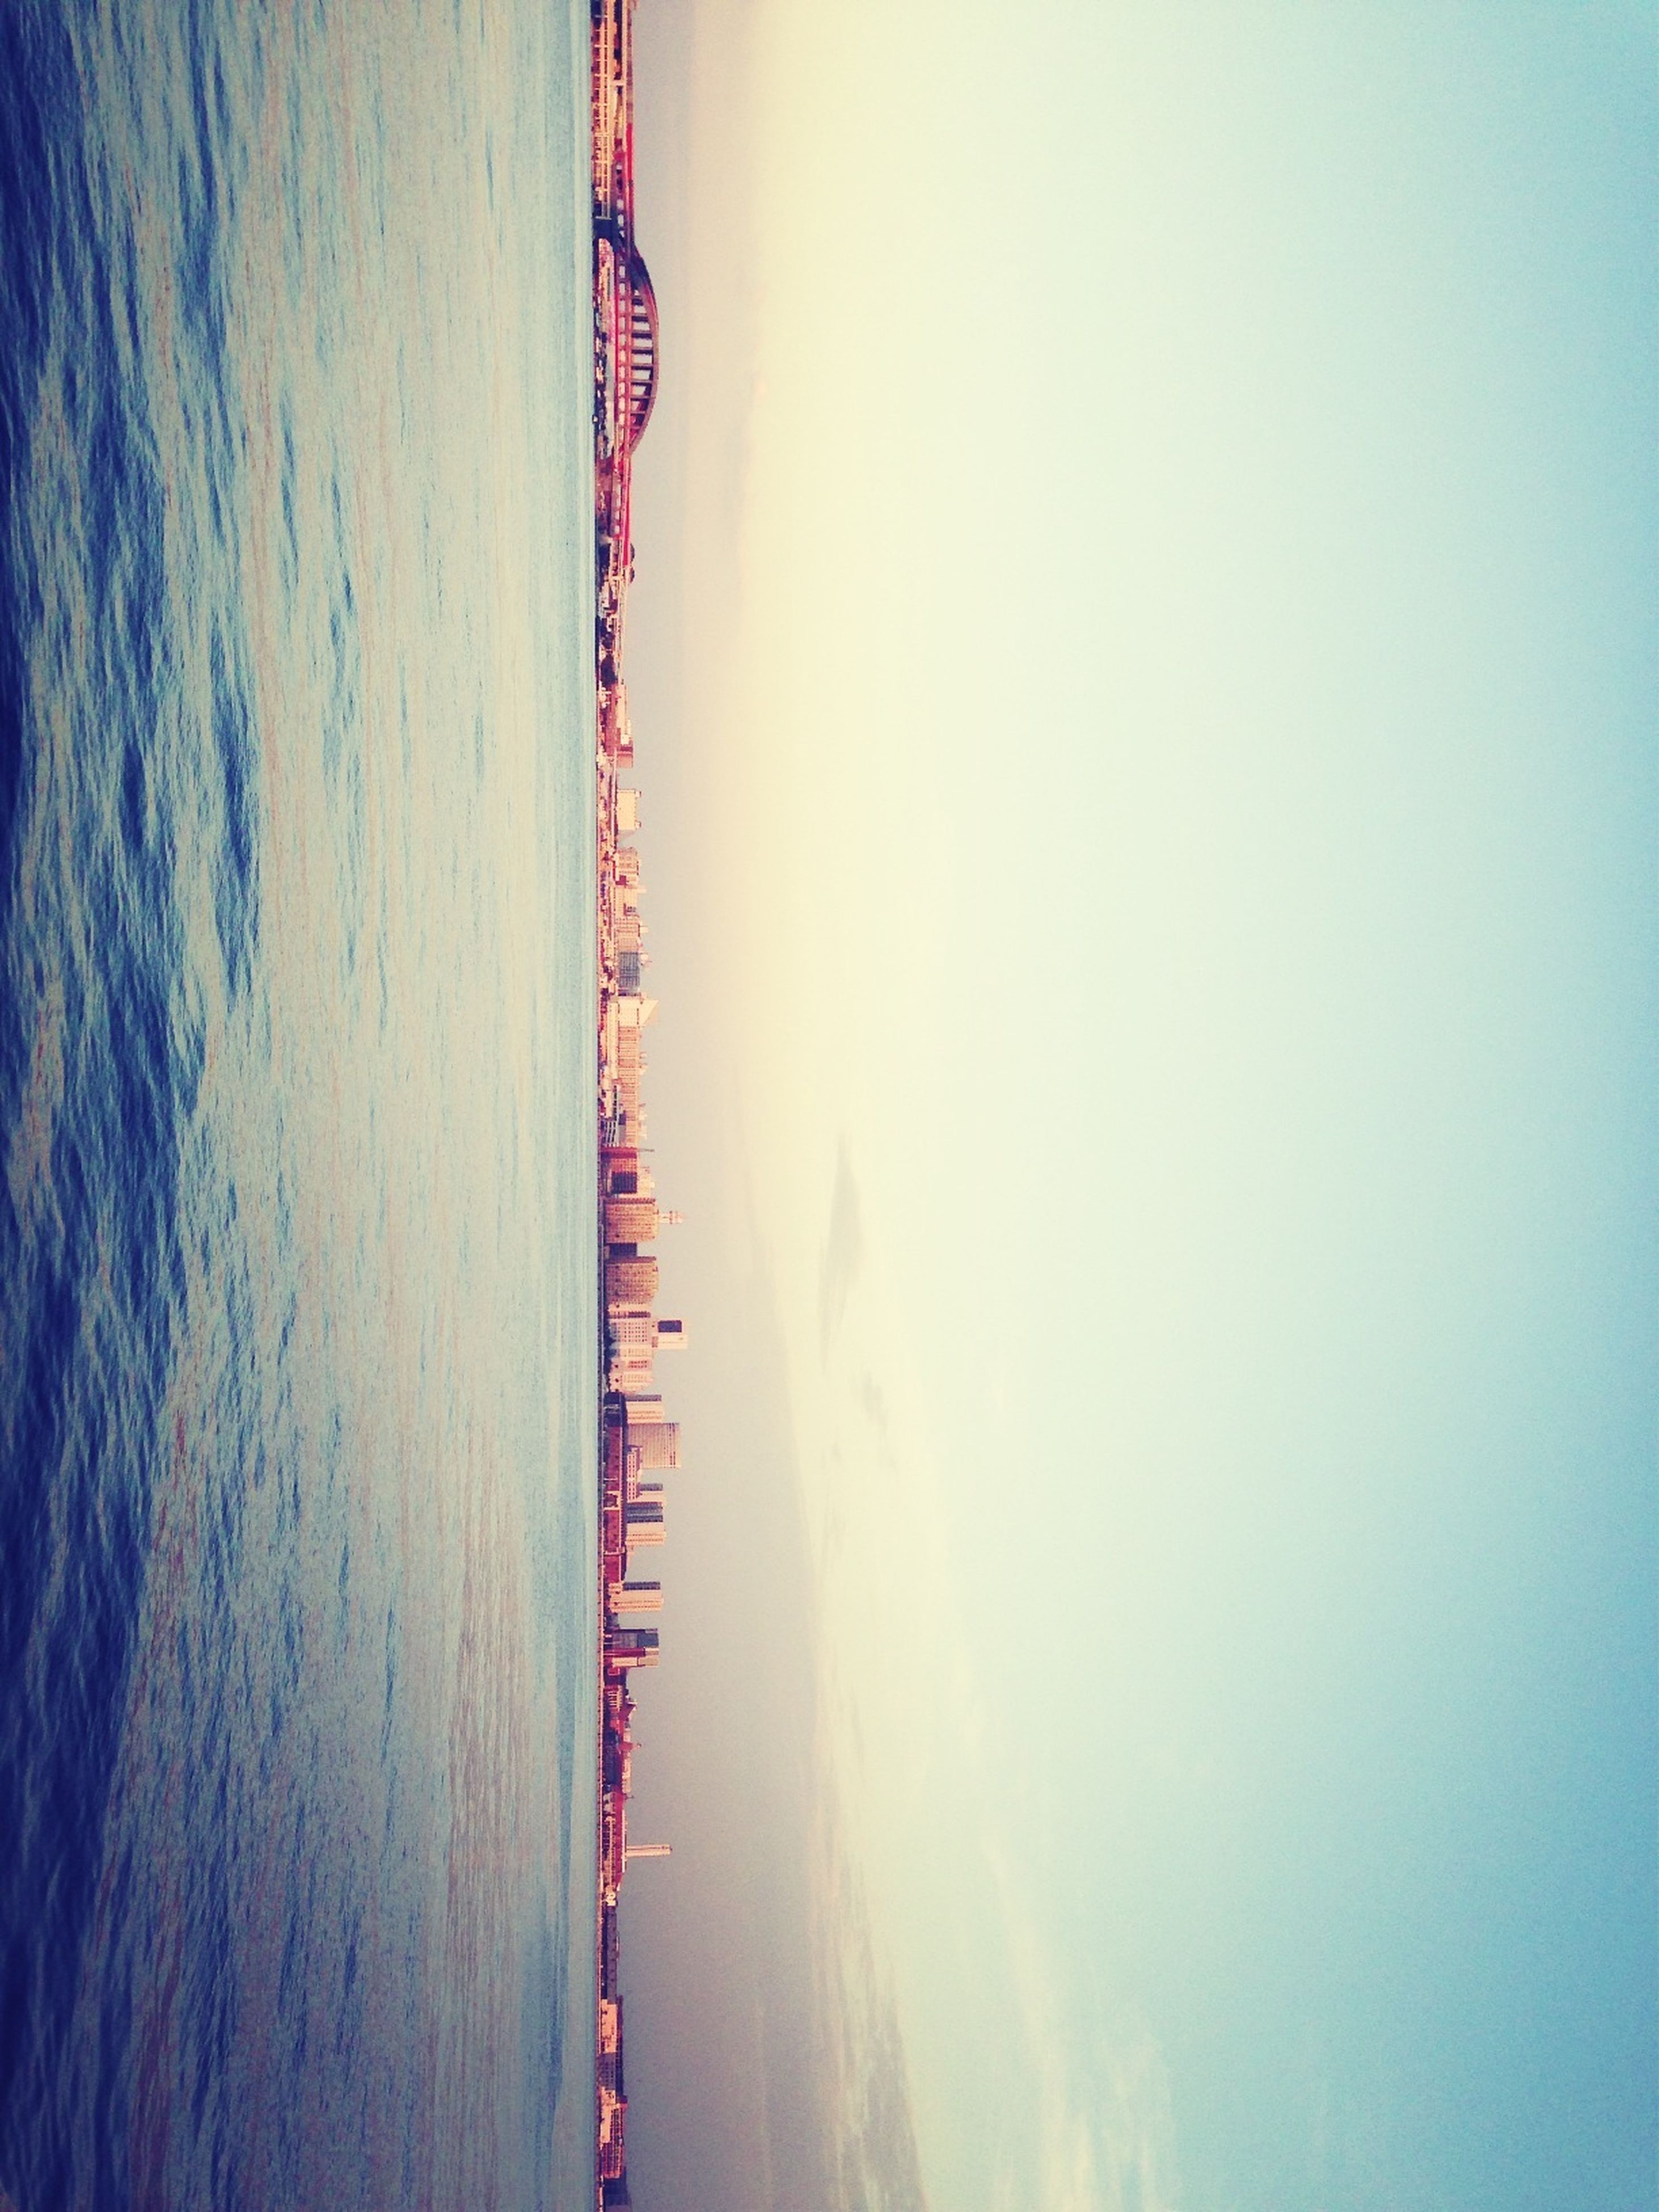 water, sea, waterfront, clear sky, copy space, tranquility, tranquil scene, scenics, nautical vessel, transportation, nature, beauty in nature, sky, boat, dusk, reflection, calm, outdoors, ocean, river